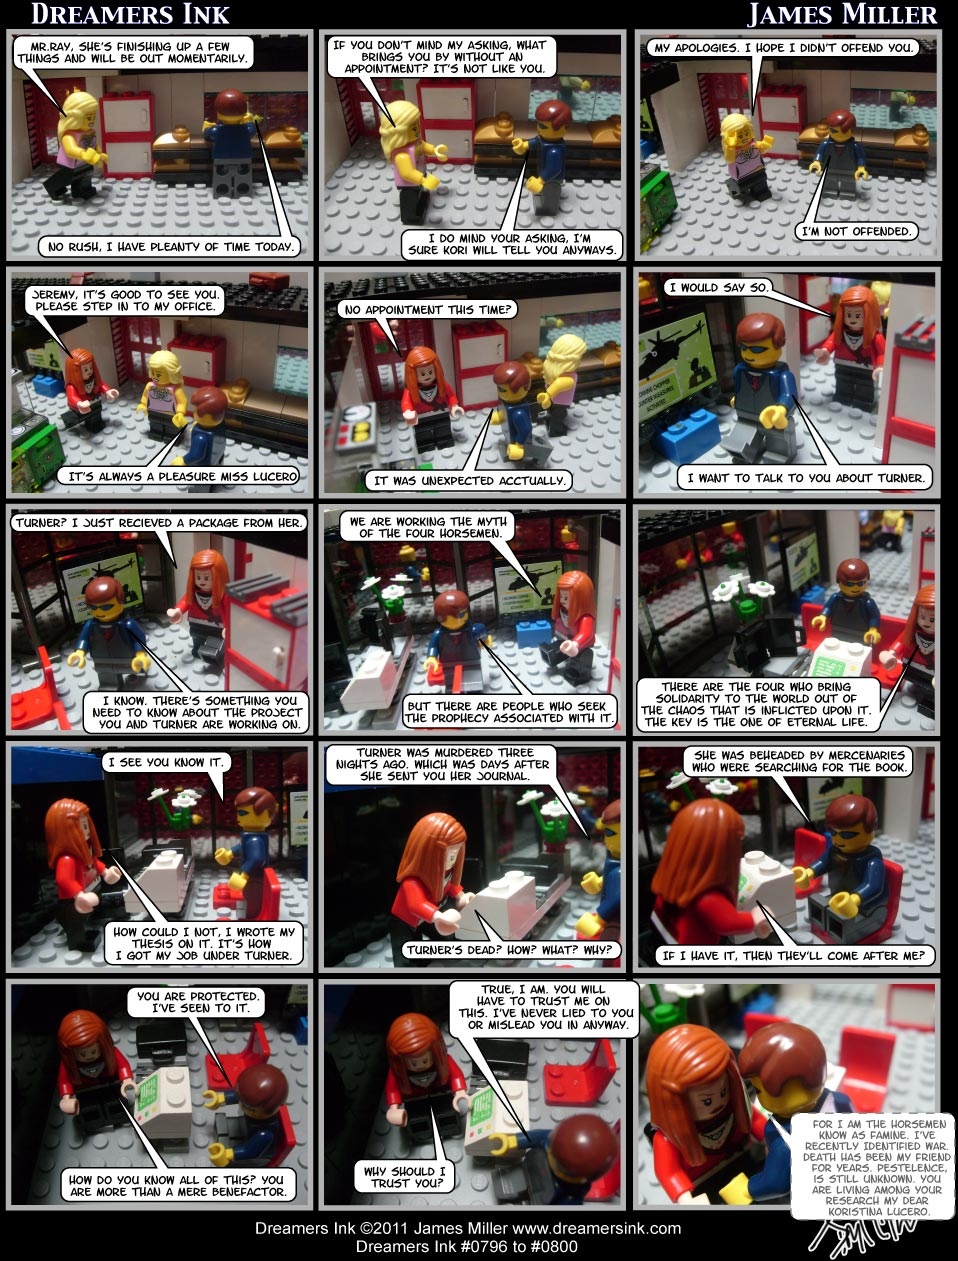 Strips #0796 To #0800